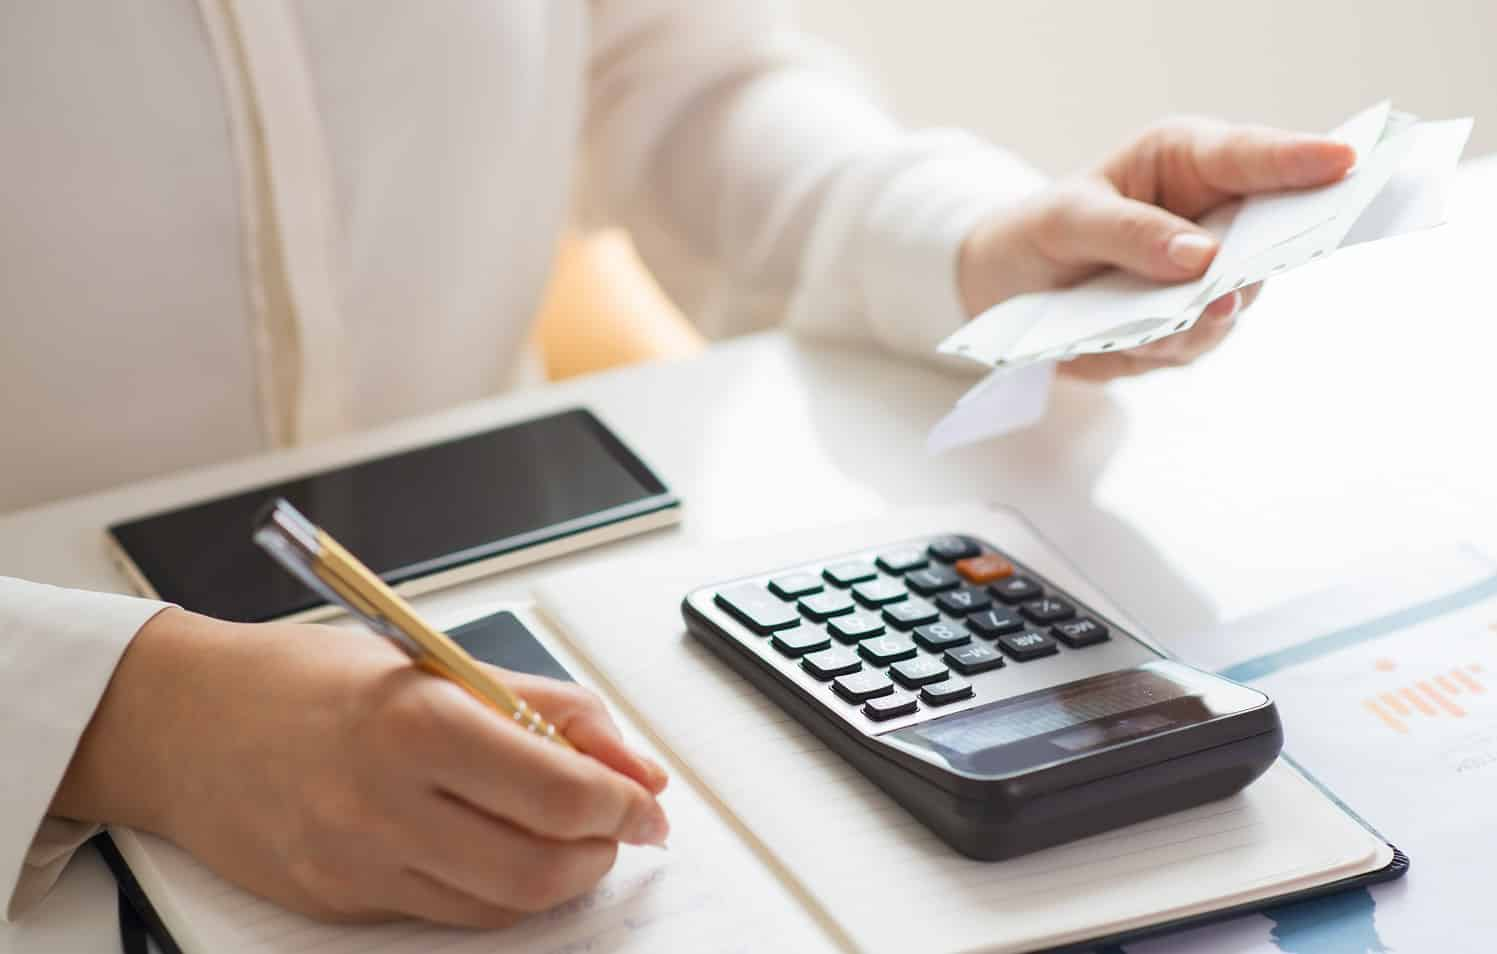 Closeup of person holding bills and calculating them. Notebook, calculator and smartphone lying on desk. Payment concept. Cropped view.